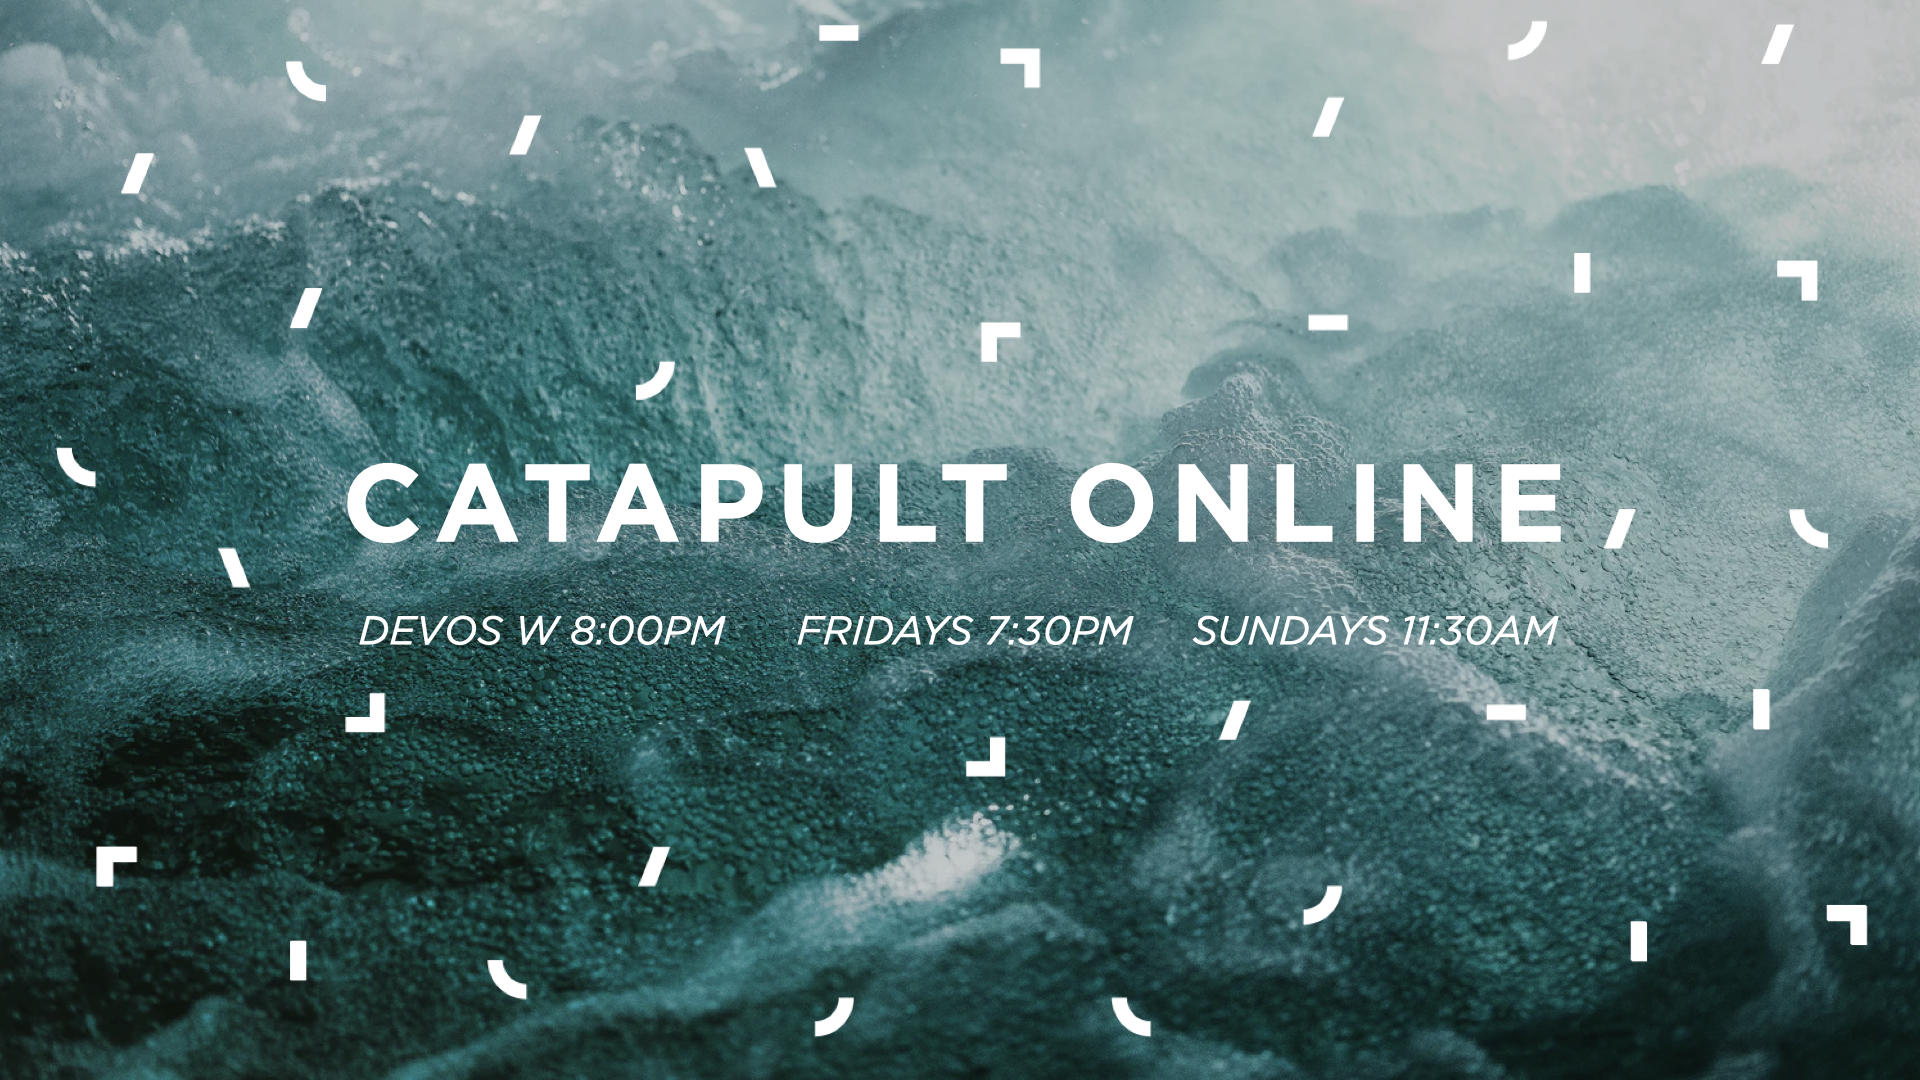 Catapult Online.001 image